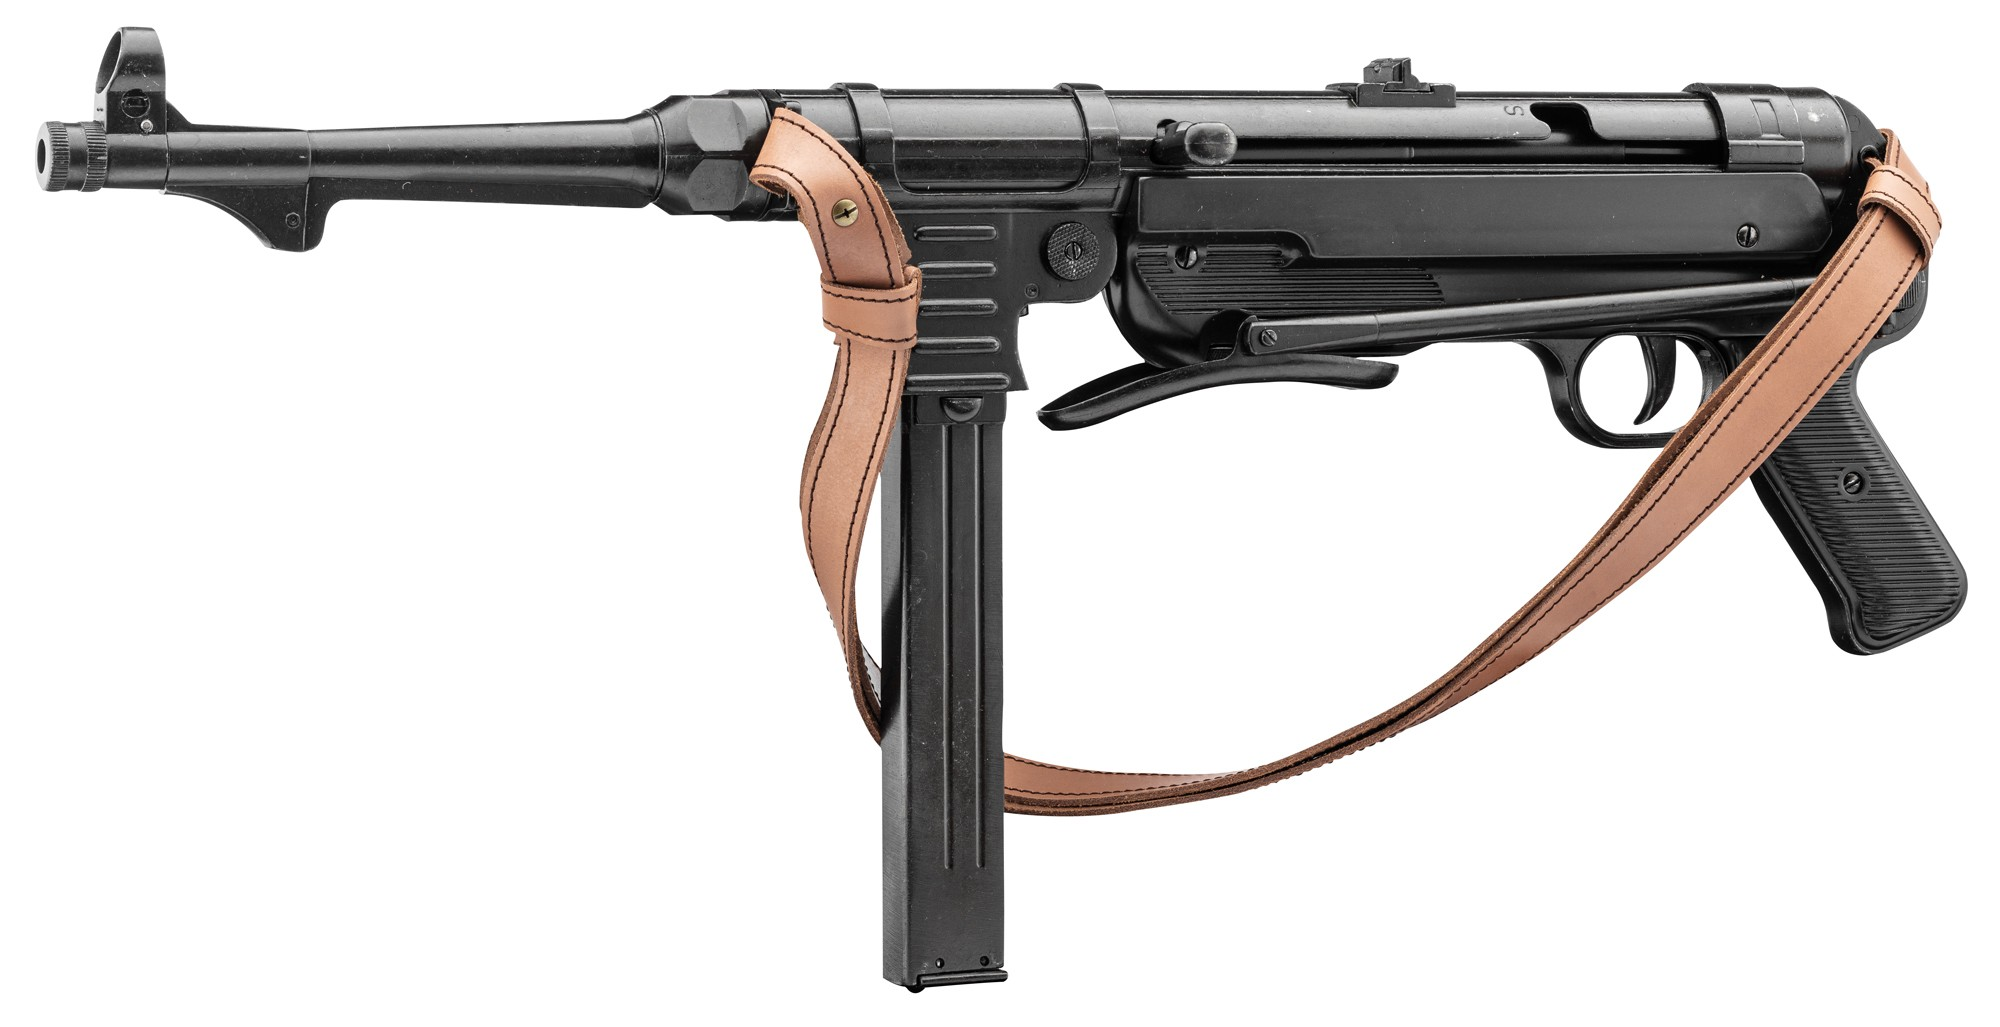 CD1111C-2 Denix decorative replica of the German MP40 submachine gun - CD1111